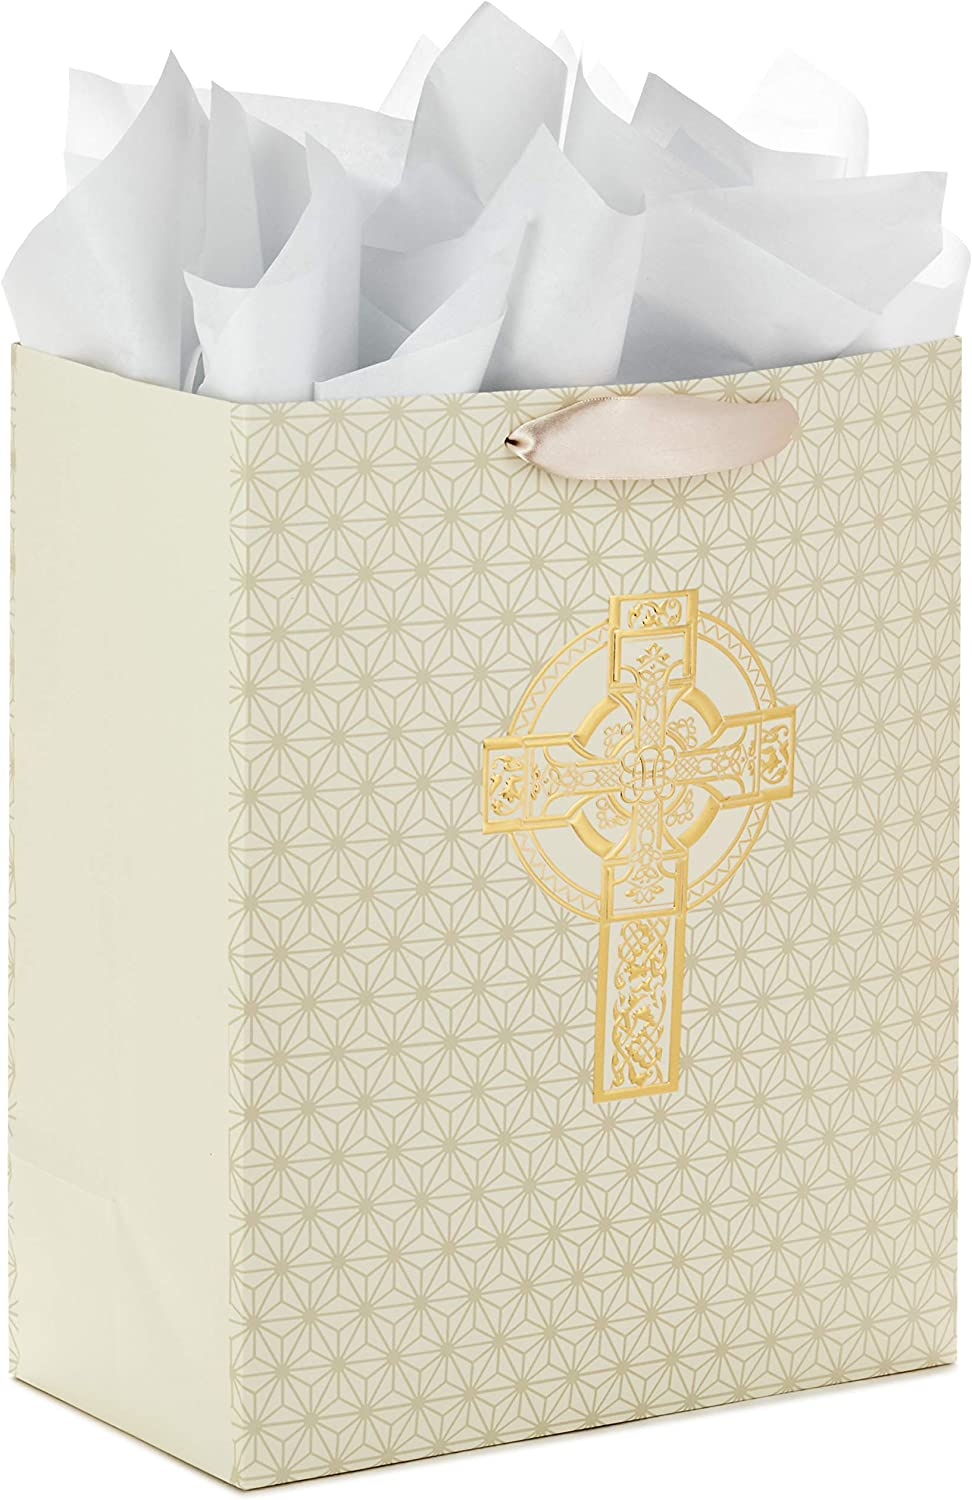 "Hallmark 13"" Large Gift Bag with Tissue Paper (Decorative Cross) for Christenings, First Communions, Weddings, Confirmations or Other Religious Occasions"